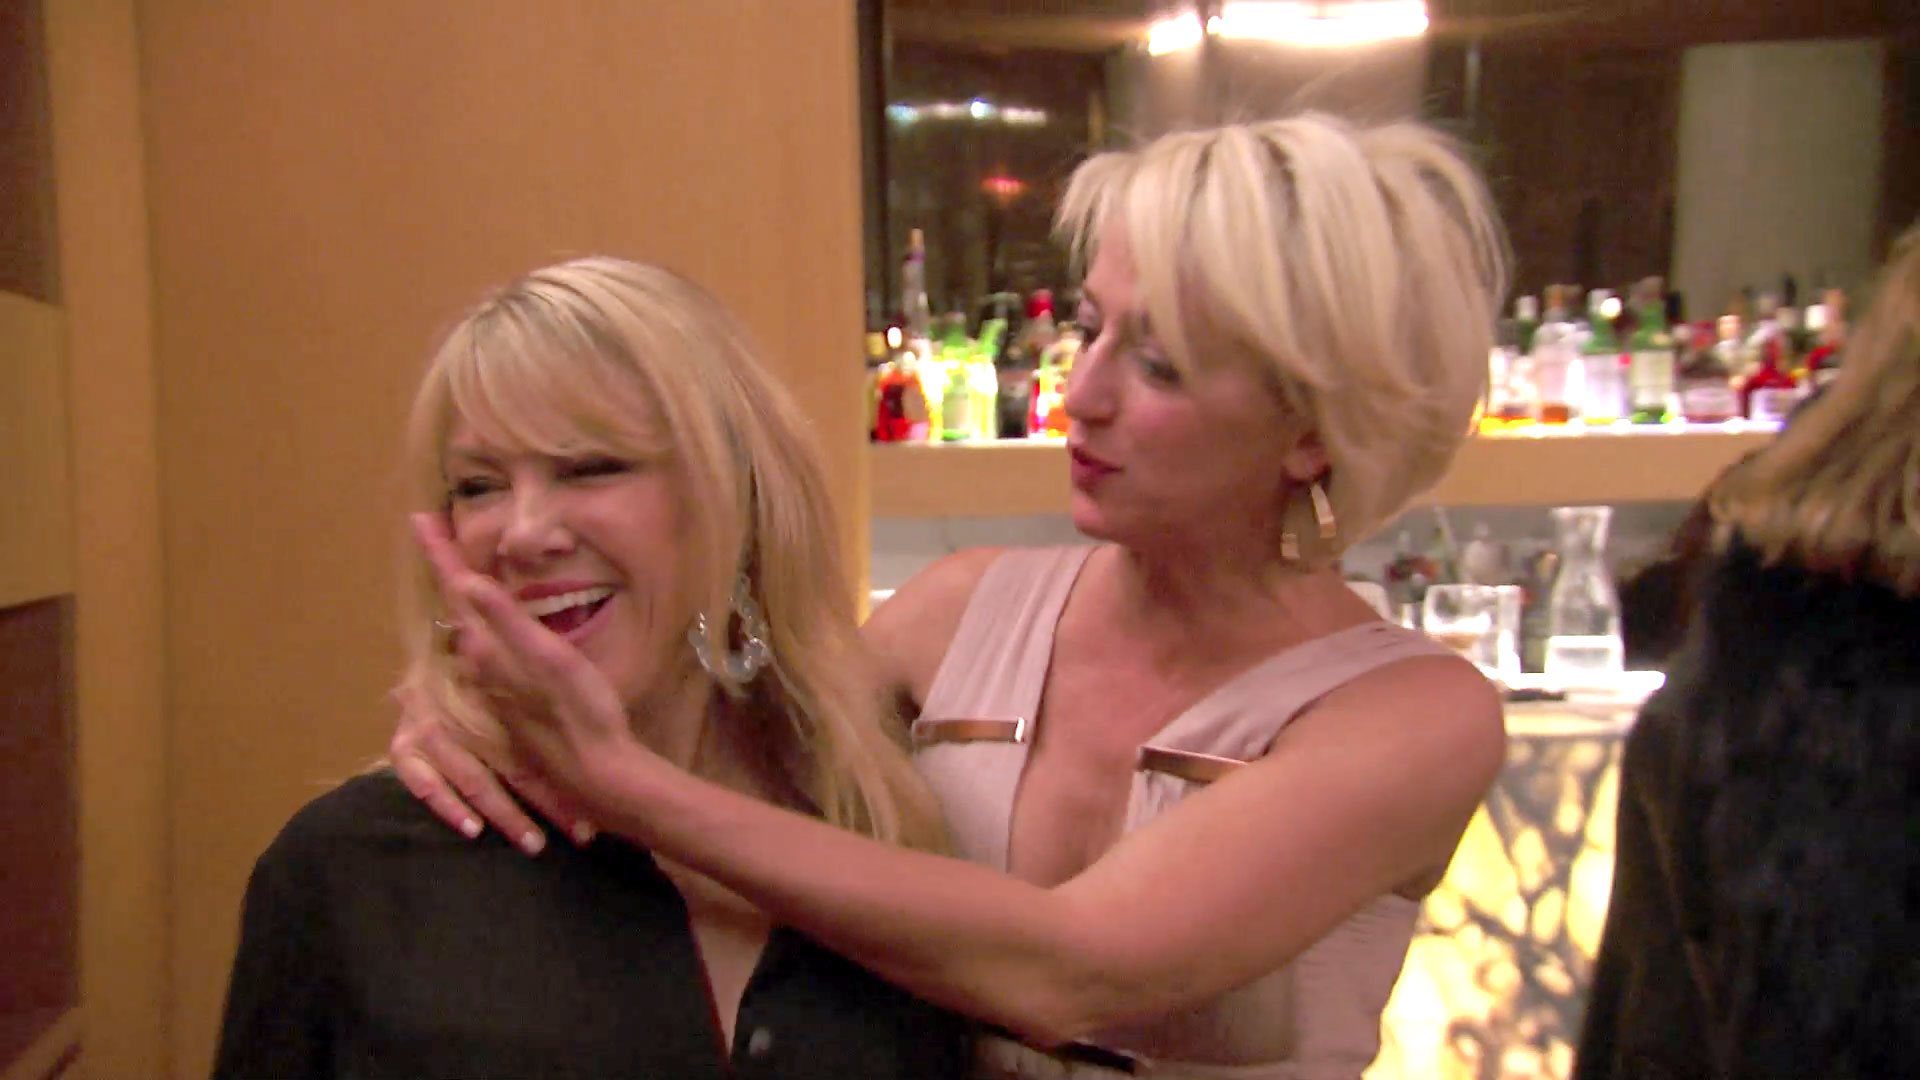 Unseen Footage: More From Dorinda's Party